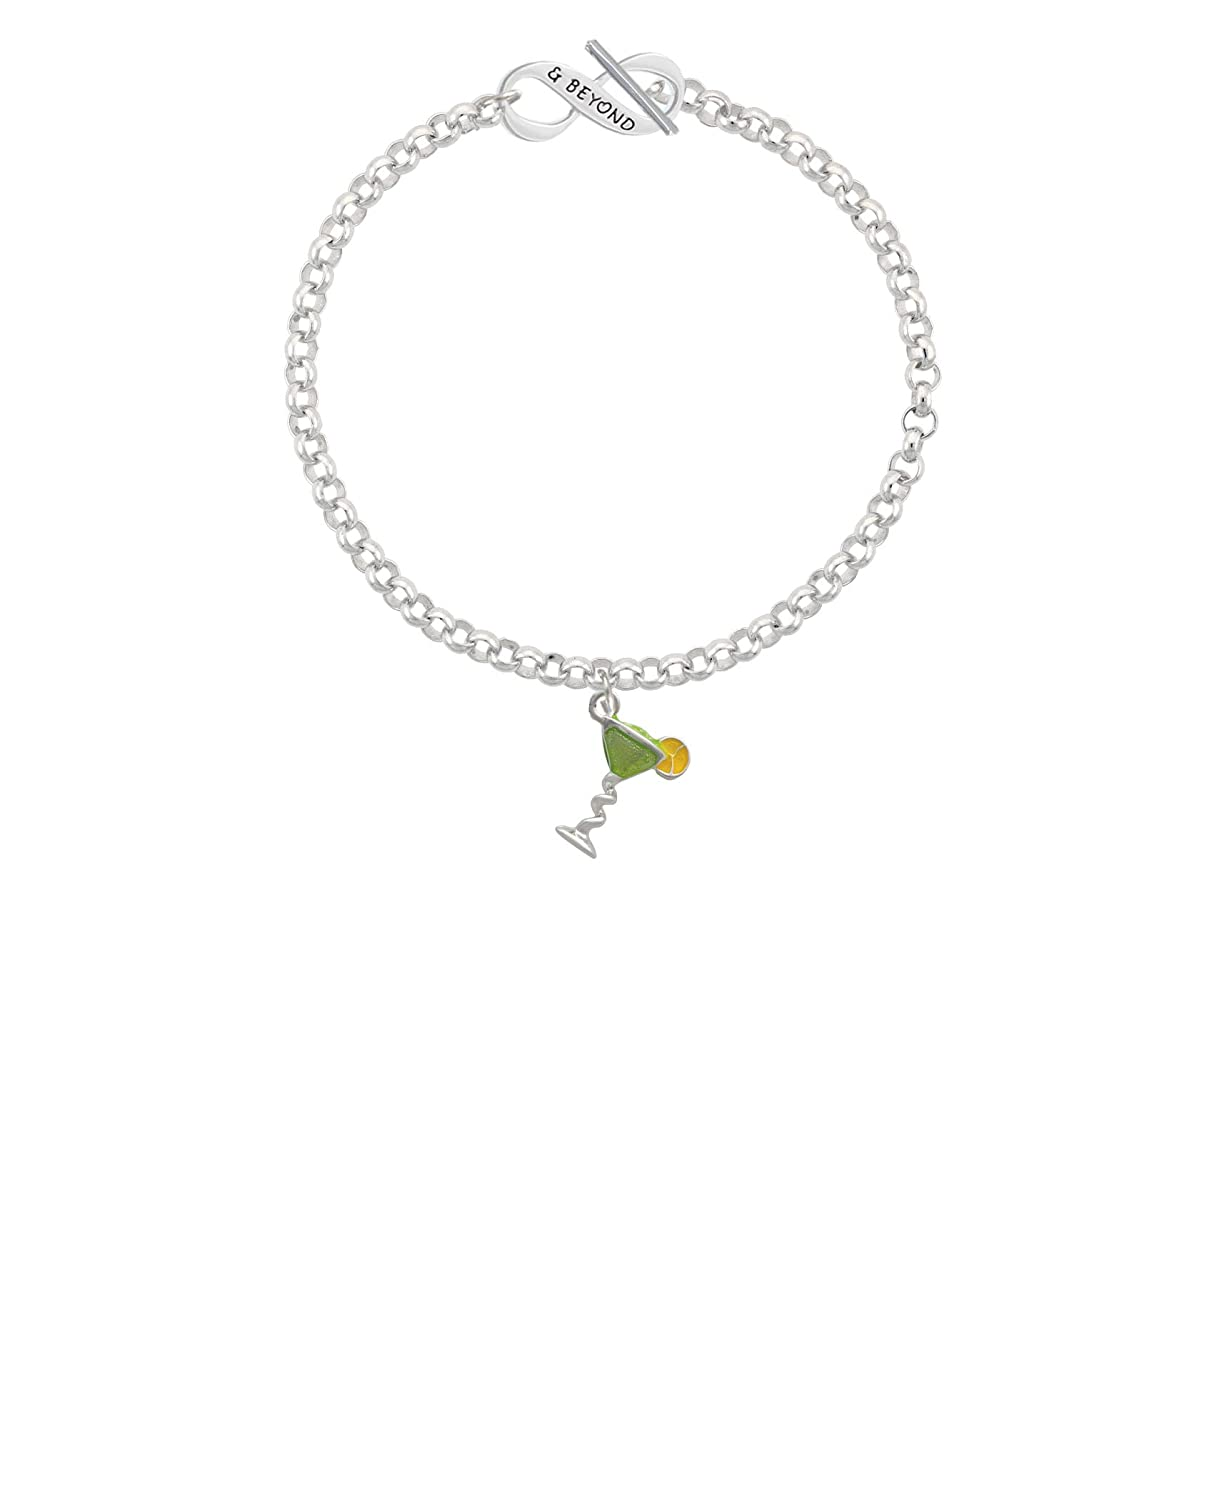 Lime Green /& Beyond Infinity Toggle Chain Bracelet 8 Delight Jewelry Silvertone Tropical Drink